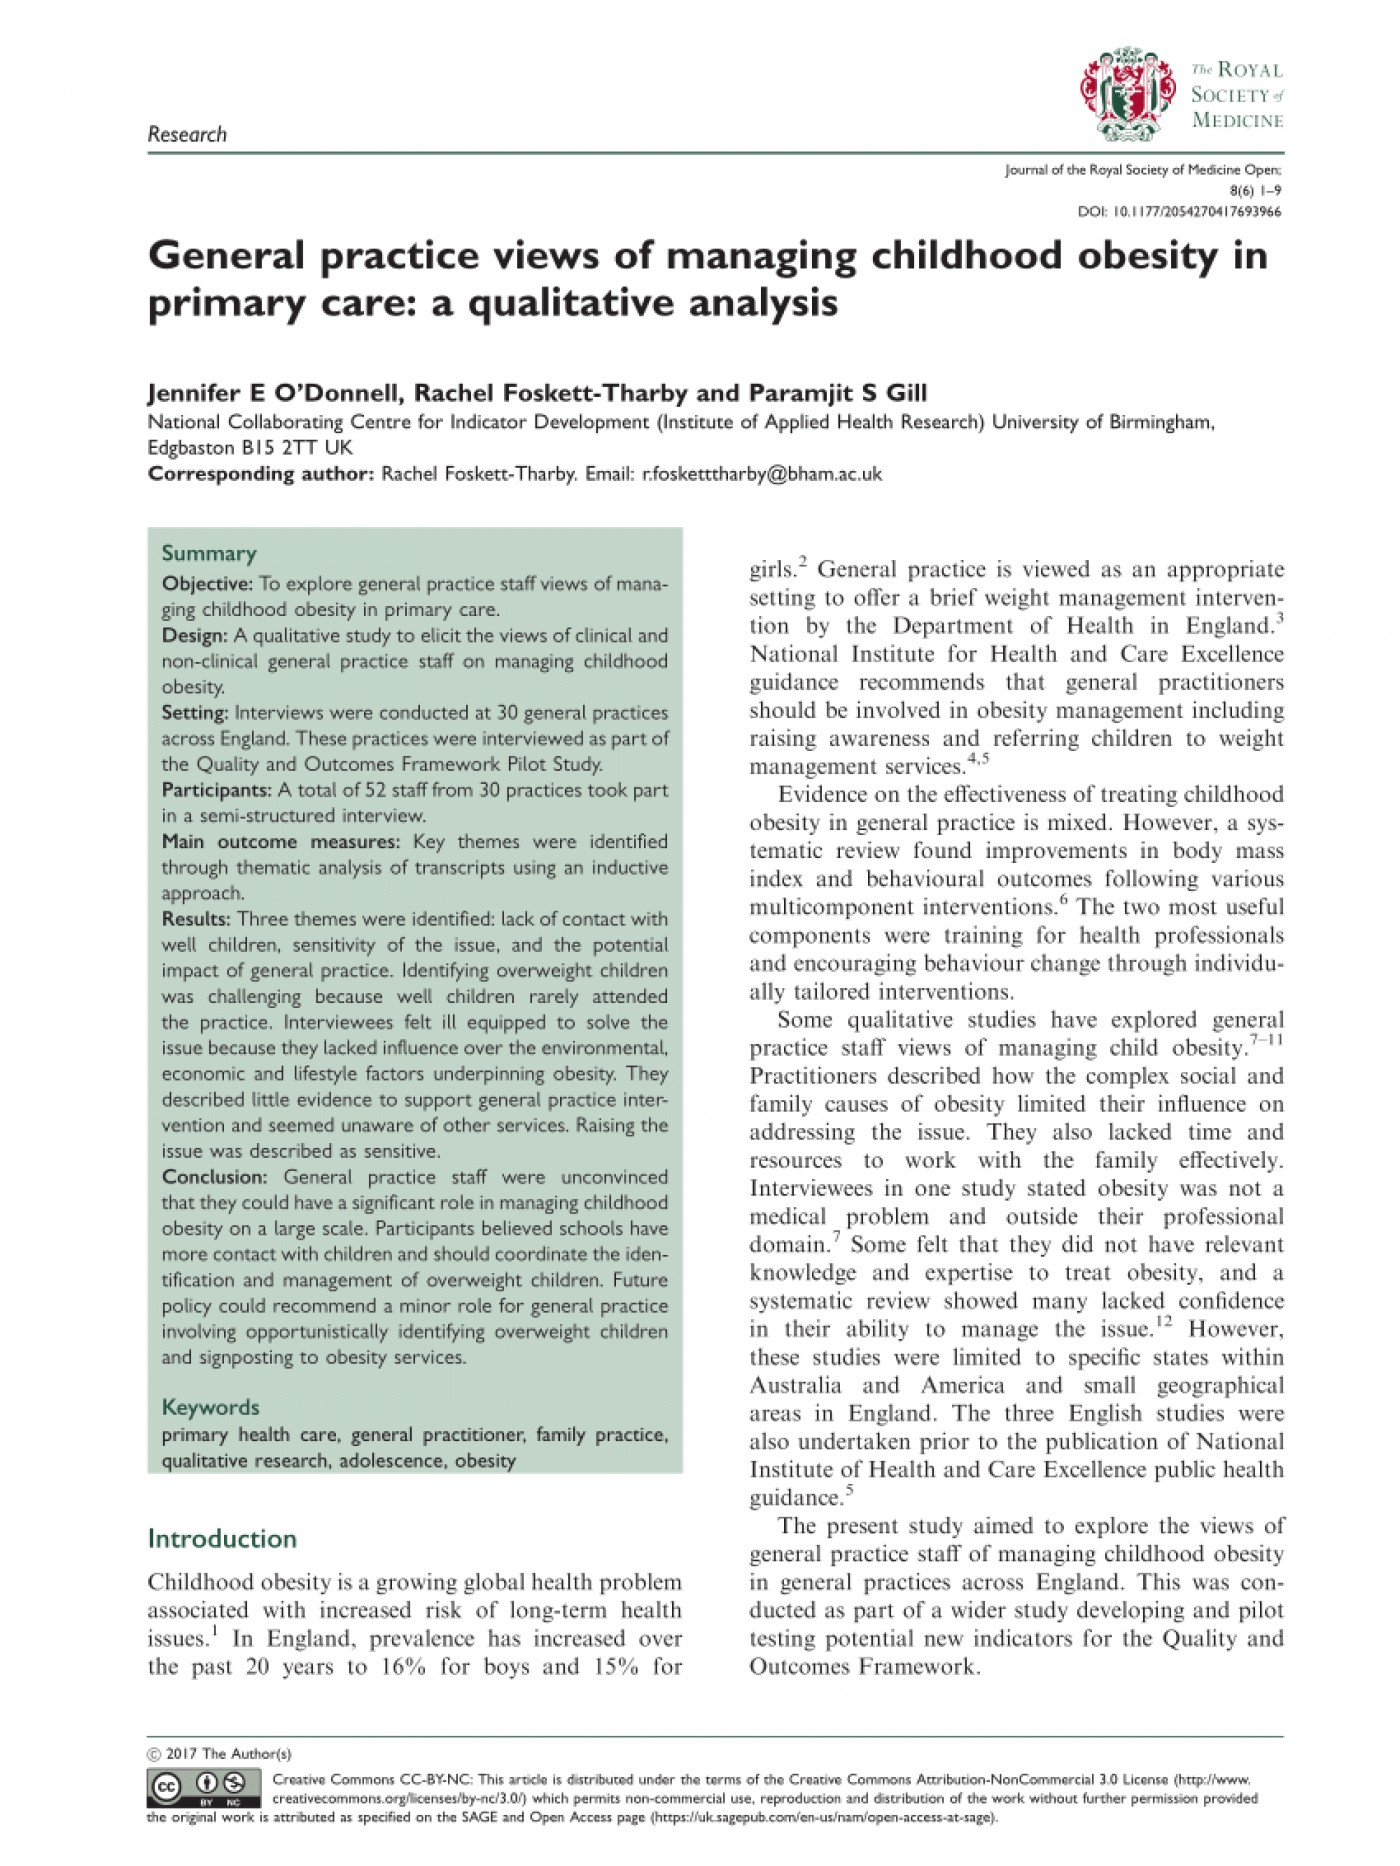 008 Primary Research Article On Childhood Obesity Paper Imposing 1400